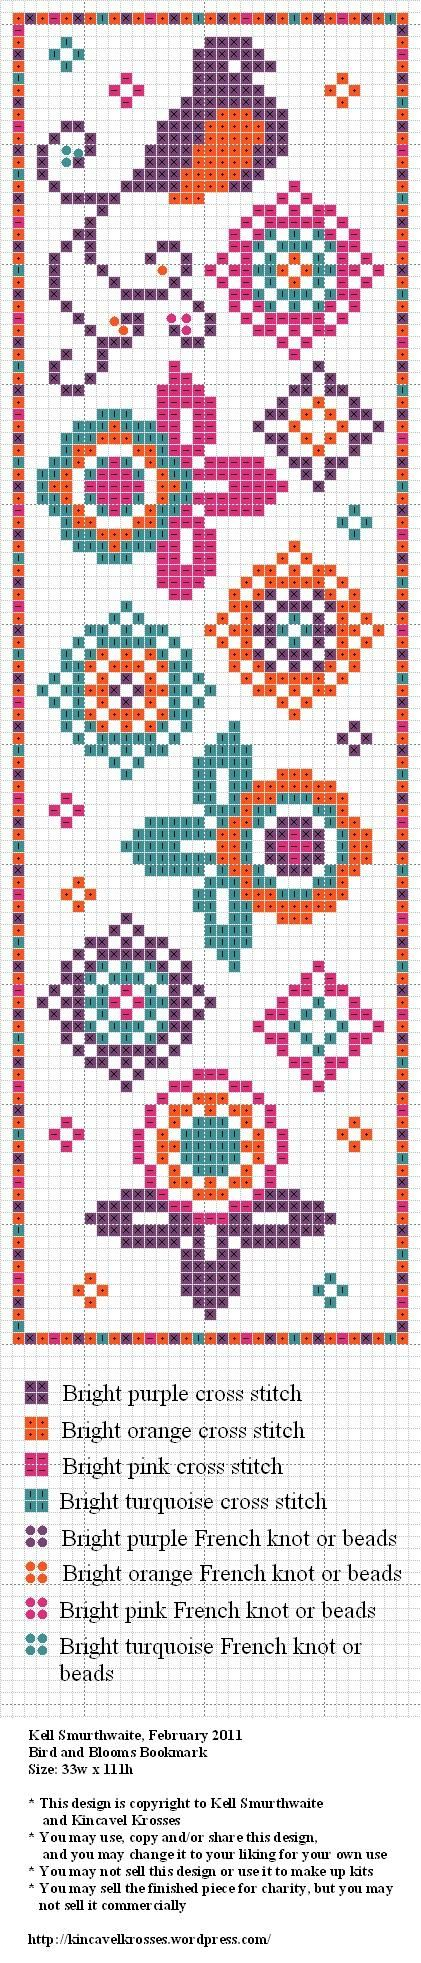 Birds and blossoms bookmark. Free sewing pattern graph for cross stitch.